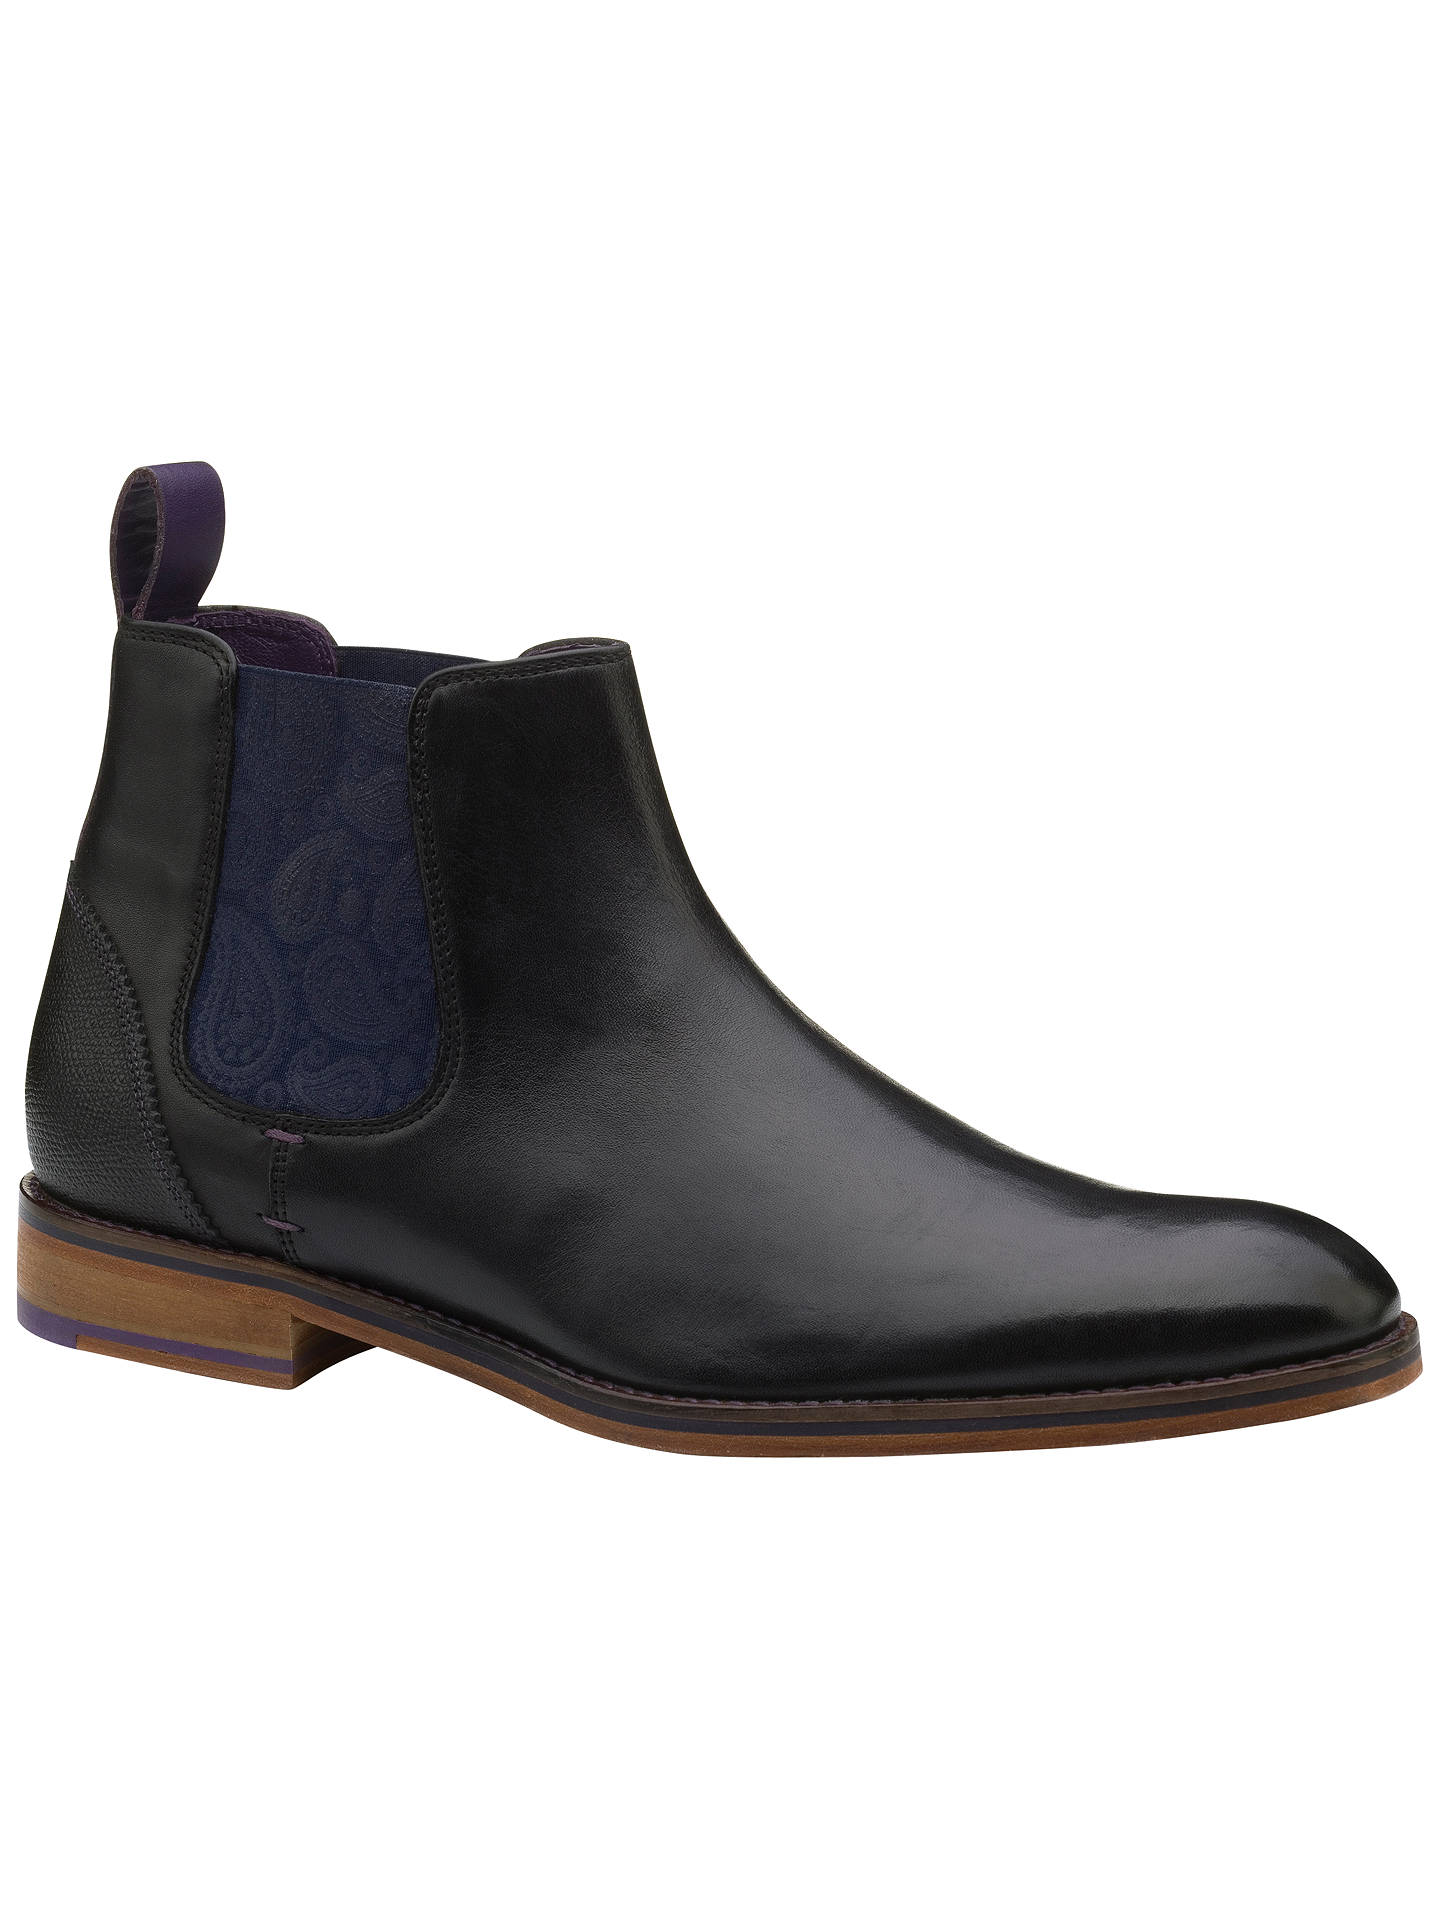 90aa9c3c79de3b Ted Baker Camroon 4 Chelsea Boots at John Lewis   Partners